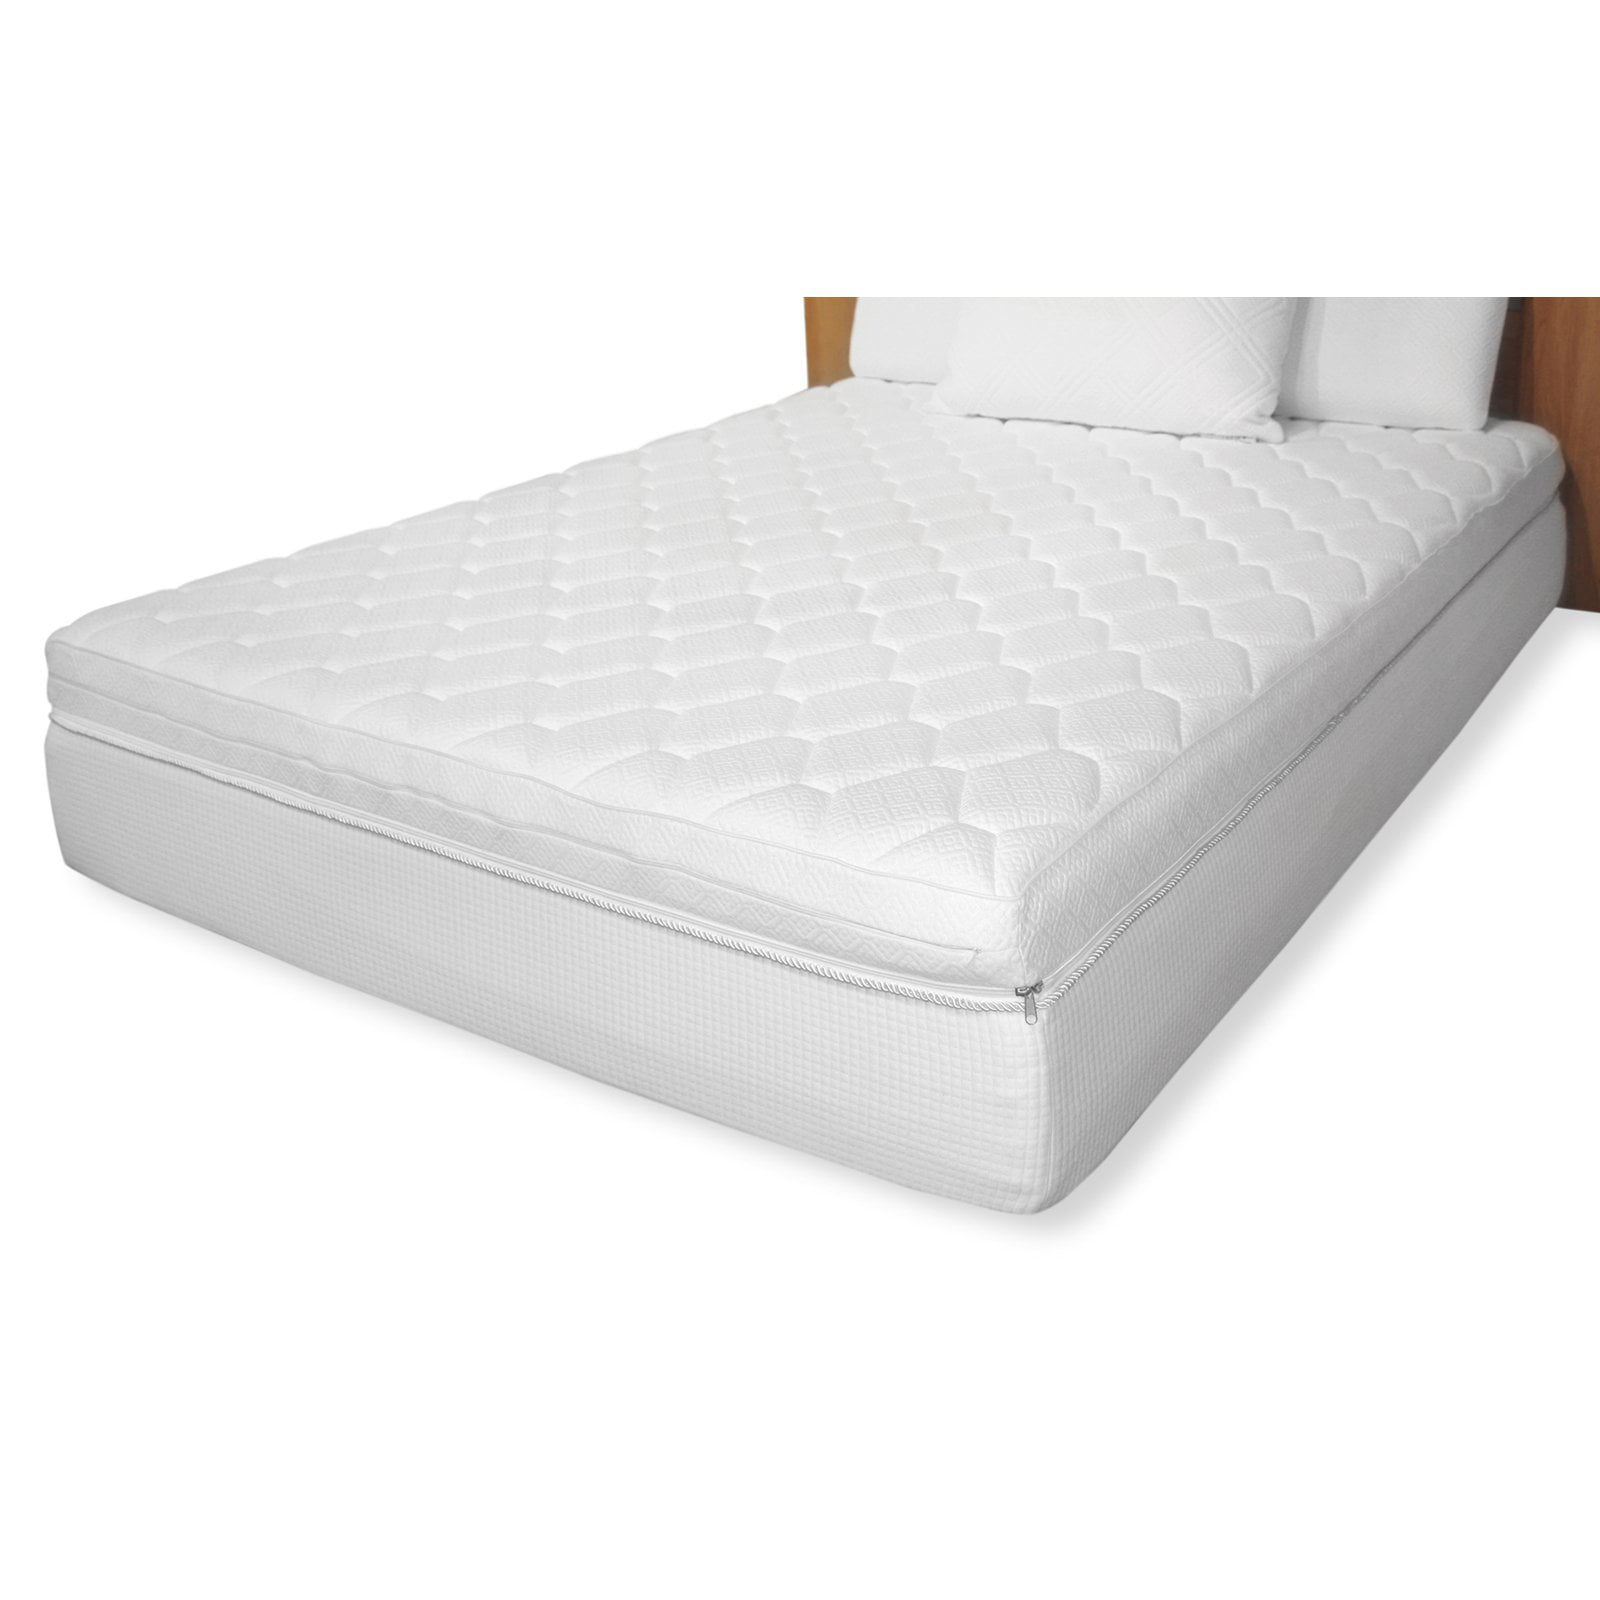 Loftworks 12 Reversible Pillow Top Memory Foam Mattress Multiple